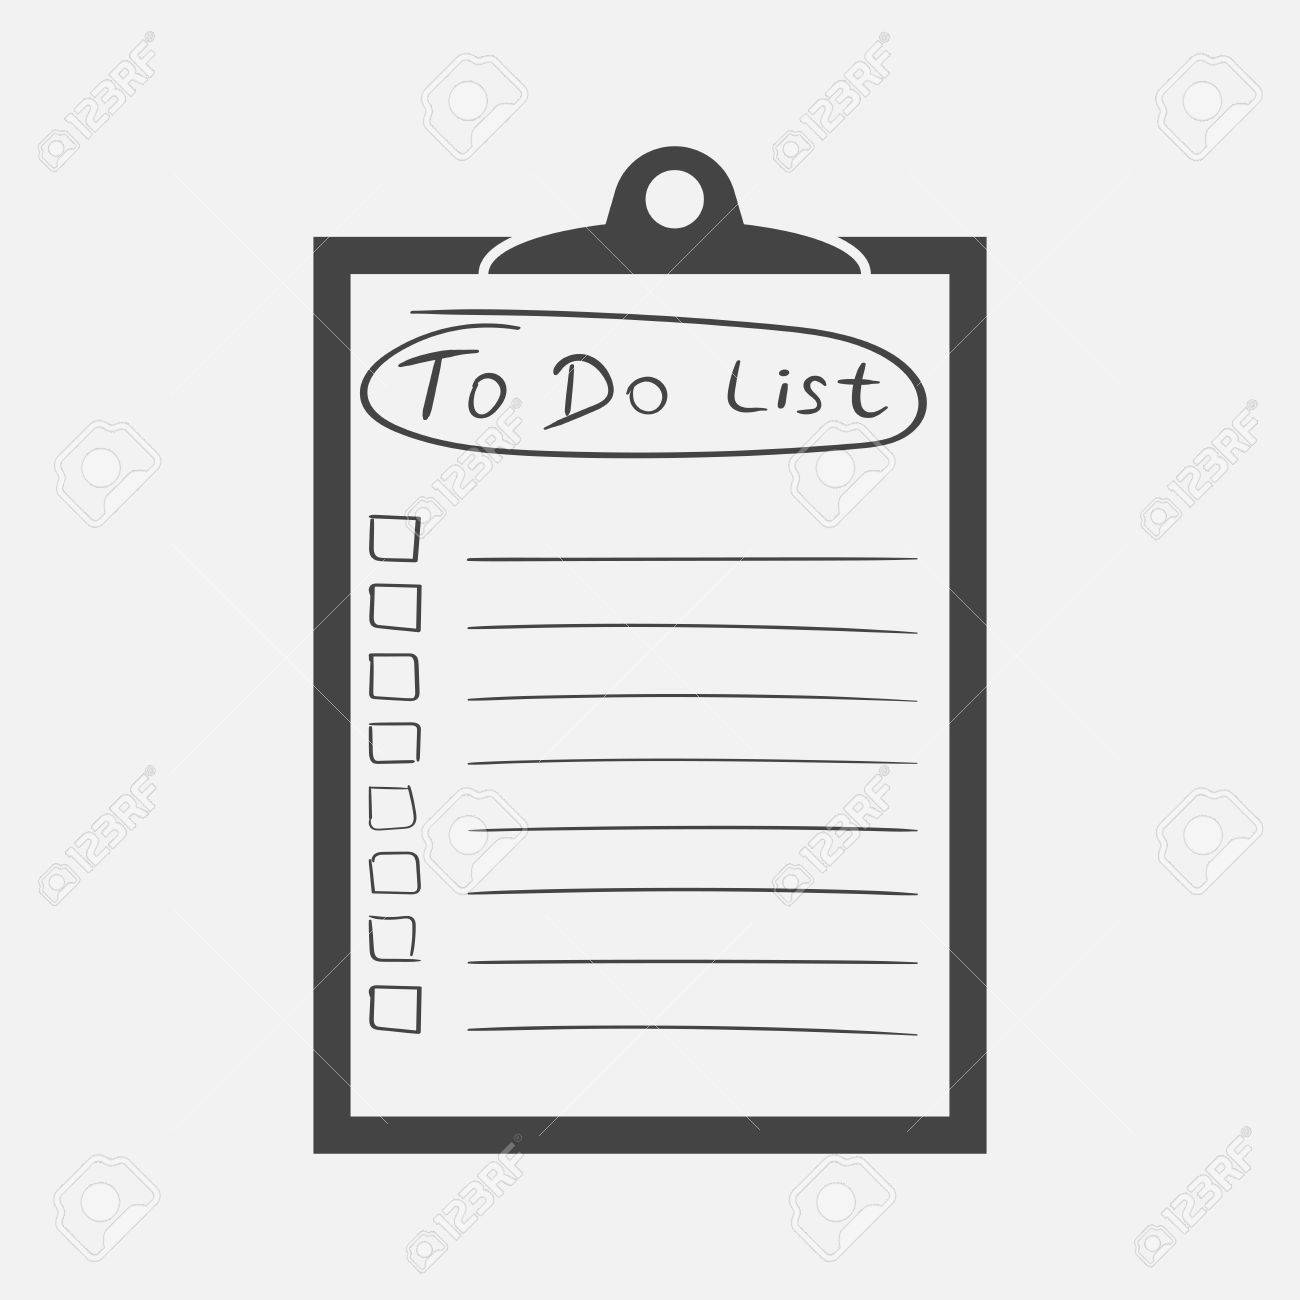 to do list icon with hand drawn text checklist task list vector